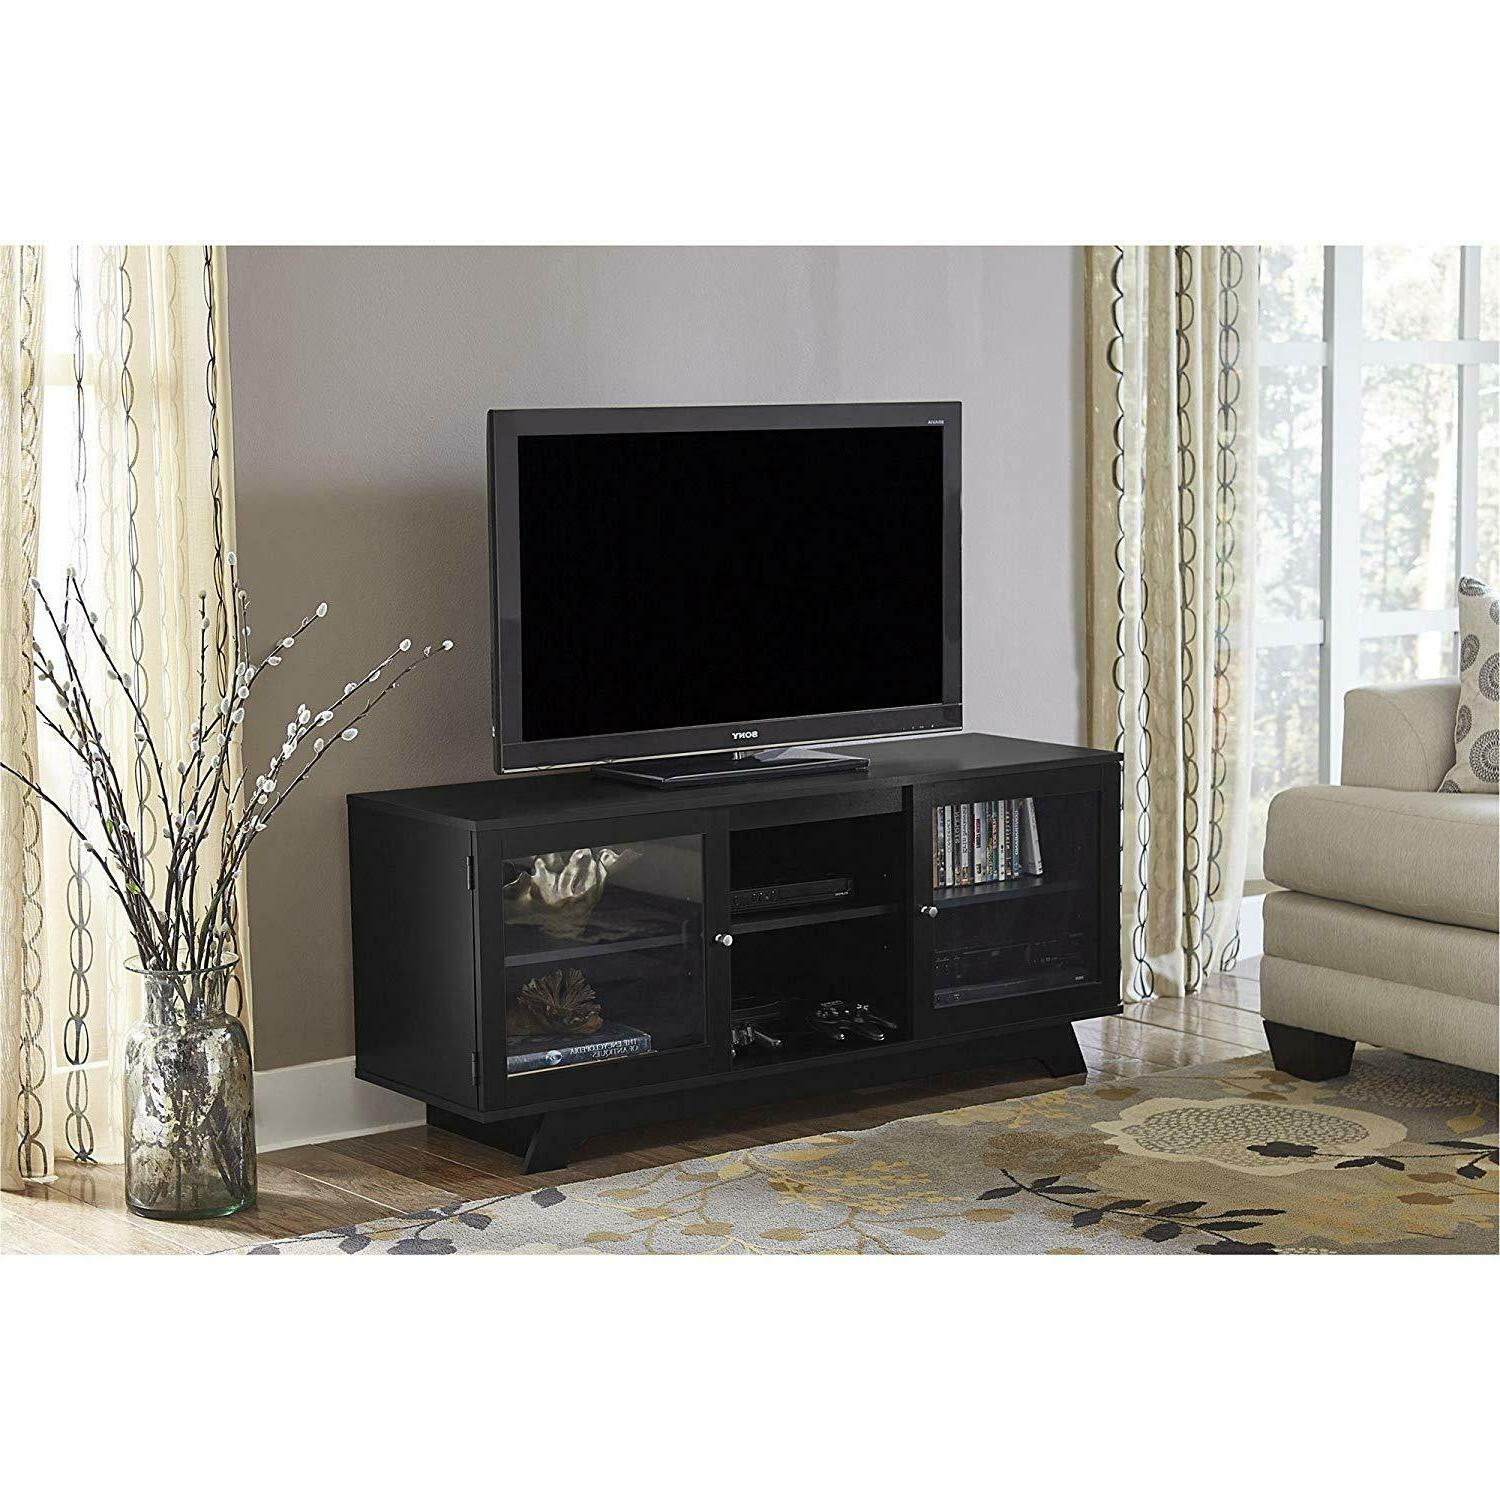 Entertainment Center Black up to Flat 4K Screens Organizer